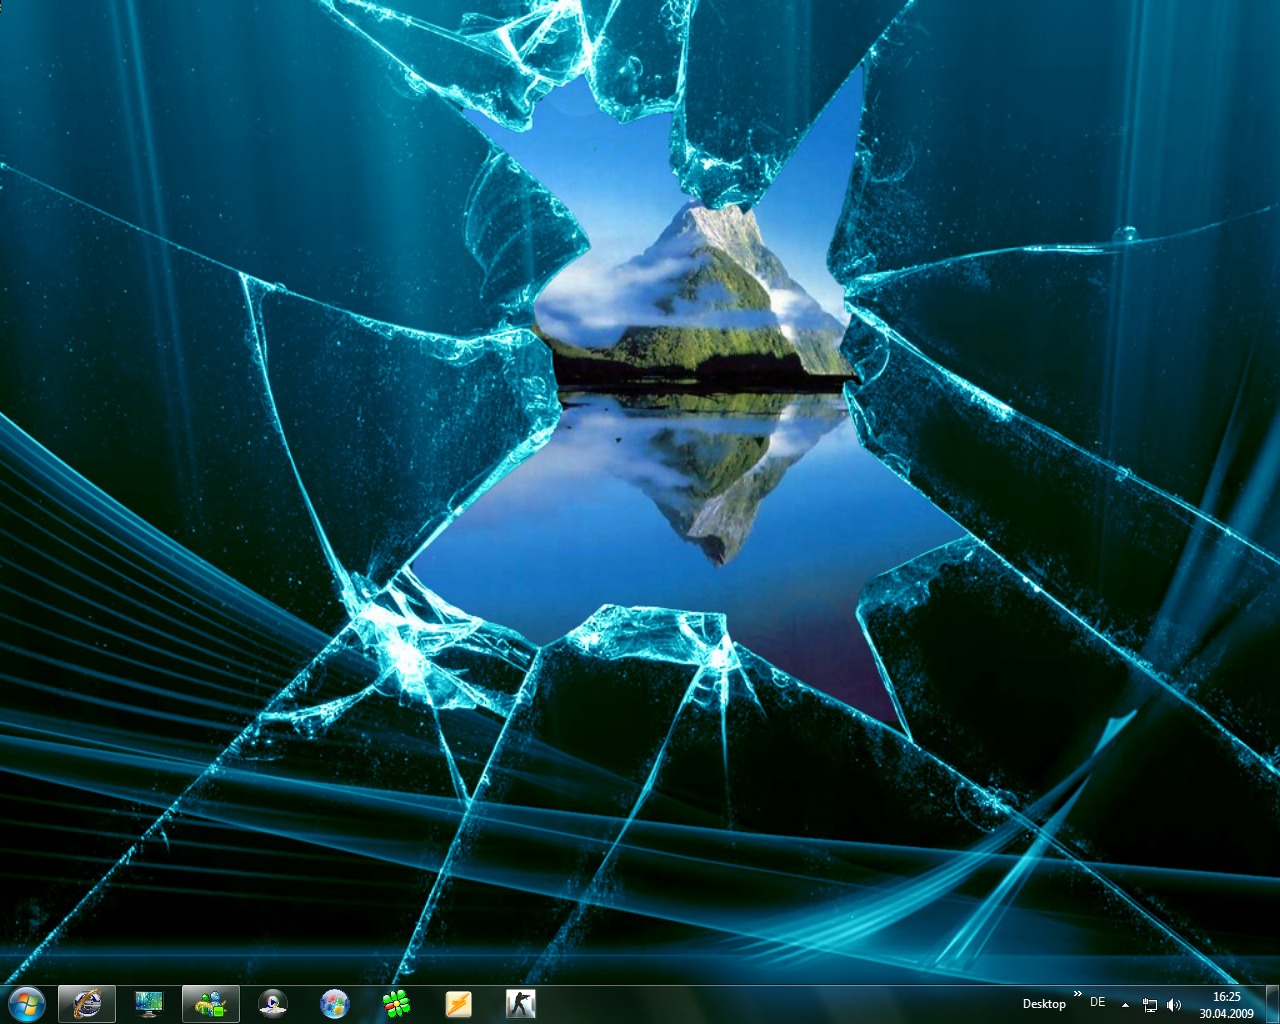 Windows 7 Broken Glass By Paddyplaya On 962434 Png Images Pngio